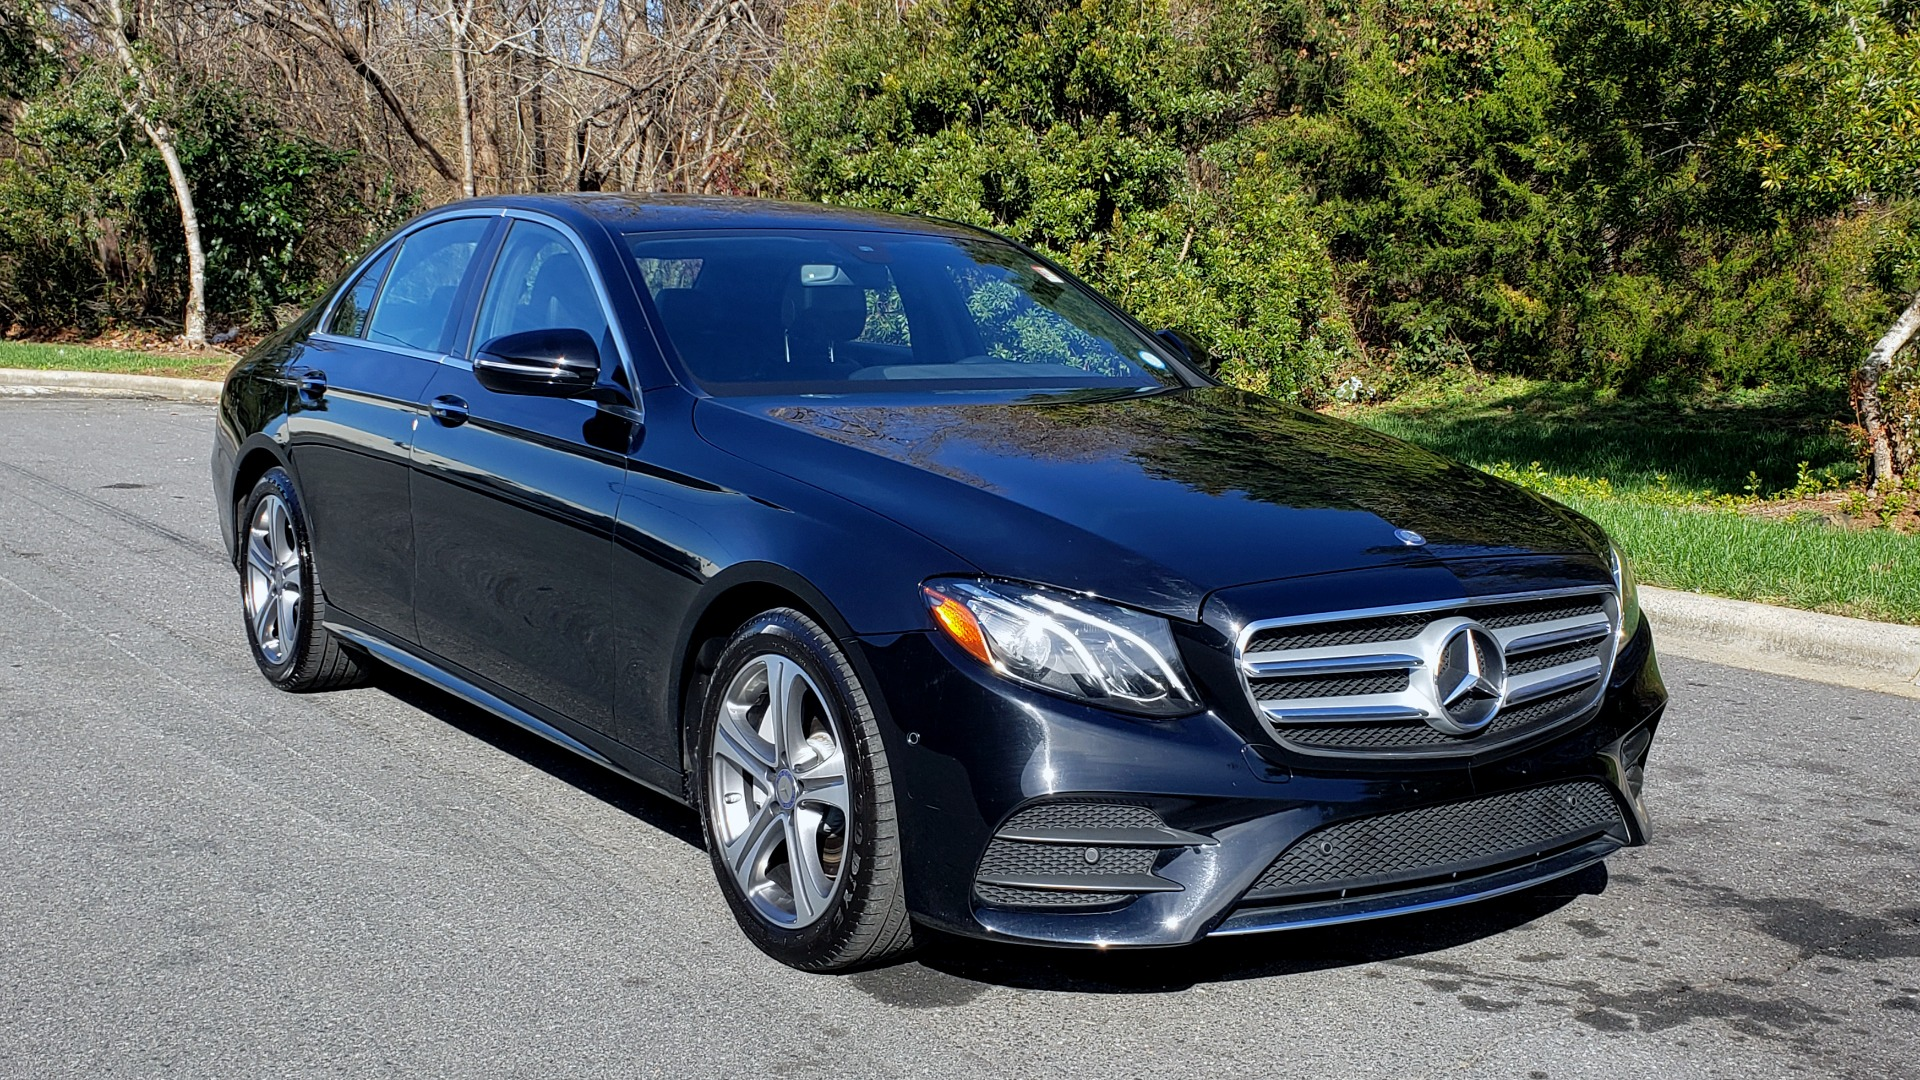 Used 2017 Mercedes-Benz E-CLASS E 300 PREMIUM / NAV / SUNROOF / BURMESTER / HTD STS / REARVIEW for sale $29,995 at Formula Imports in Charlotte NC 28227 4